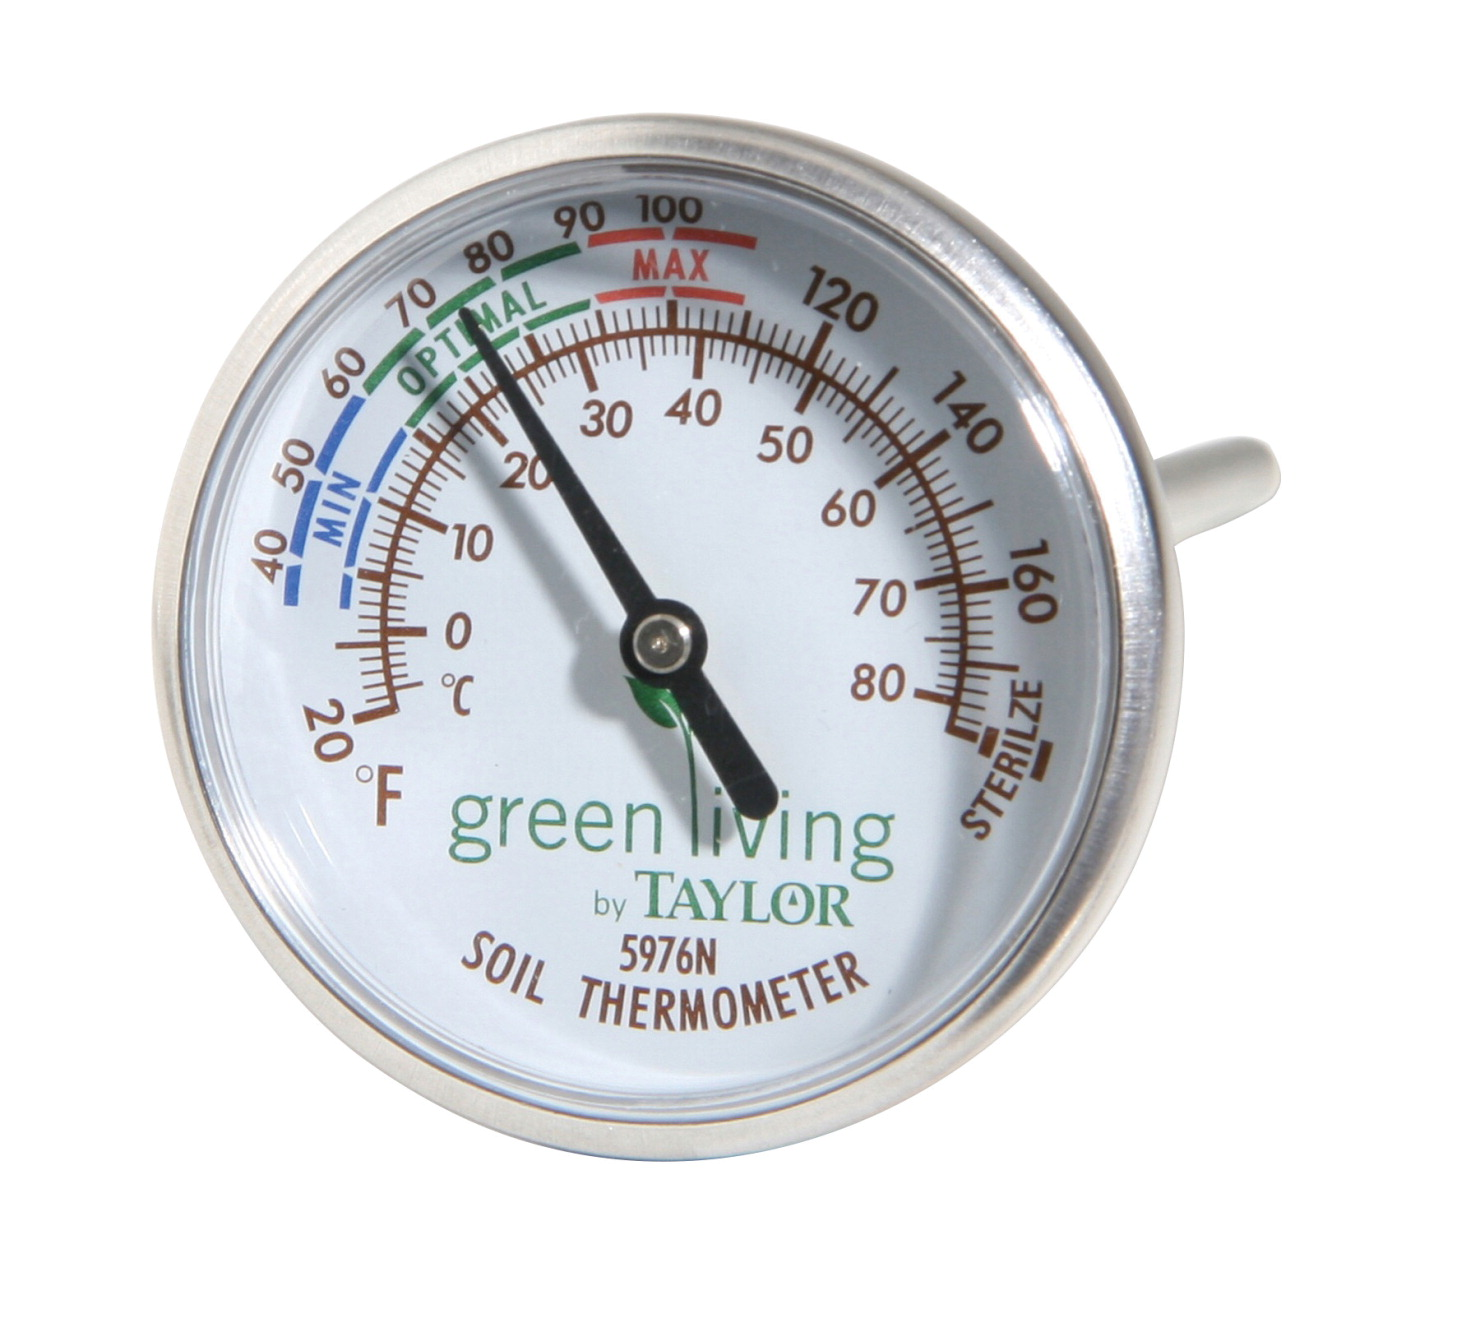 Soil thermometer school specialty marketplace for Soil thermometer